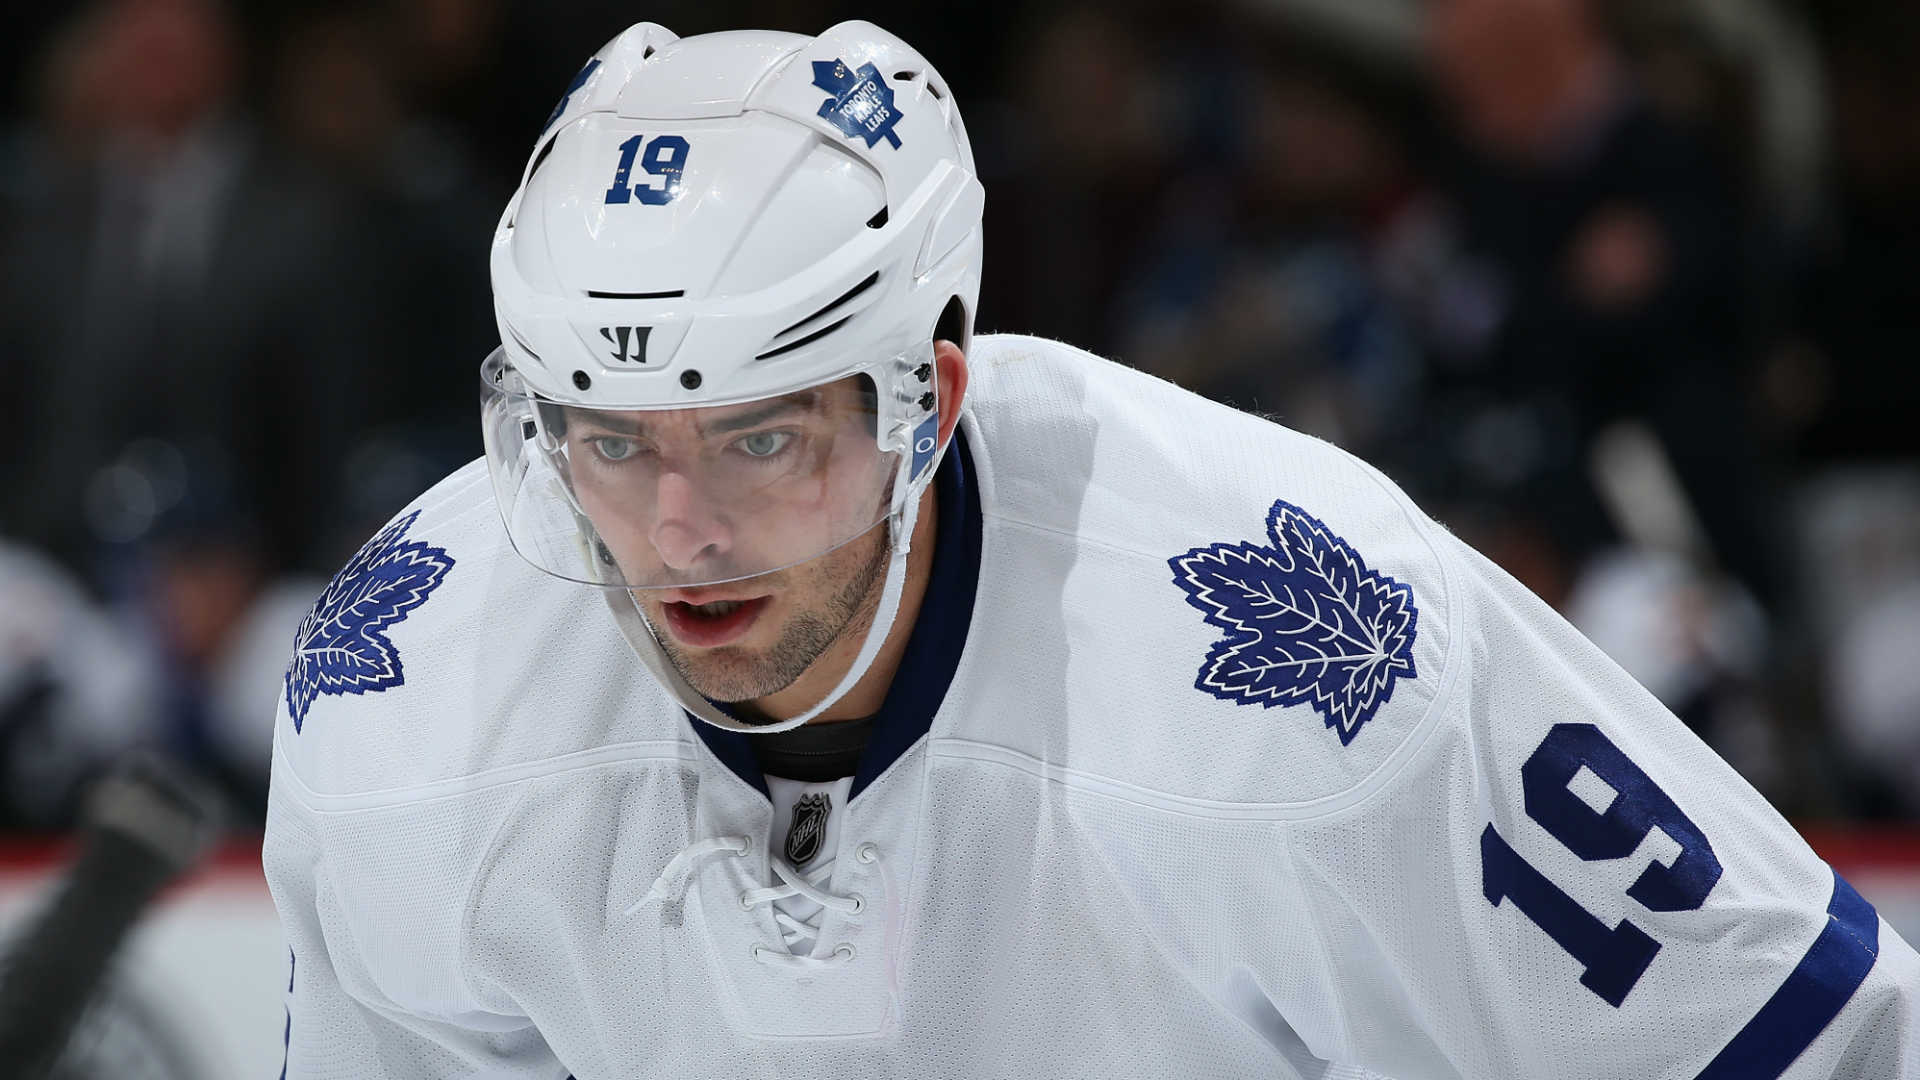 Joffrey Lupul apologizes, says comments were made out of frustration